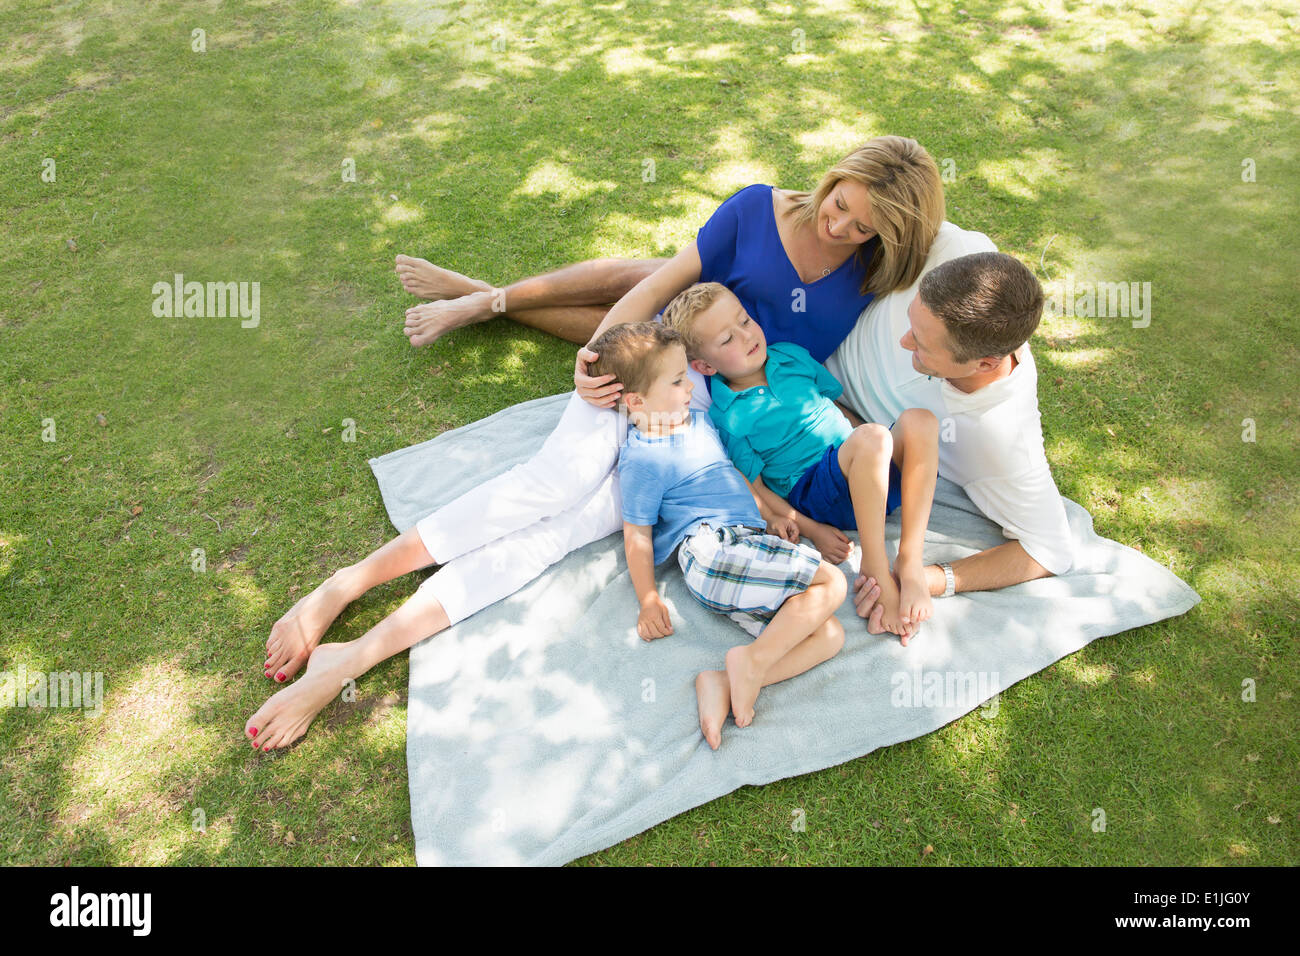 Family of four on picnic blanket - Stock Image